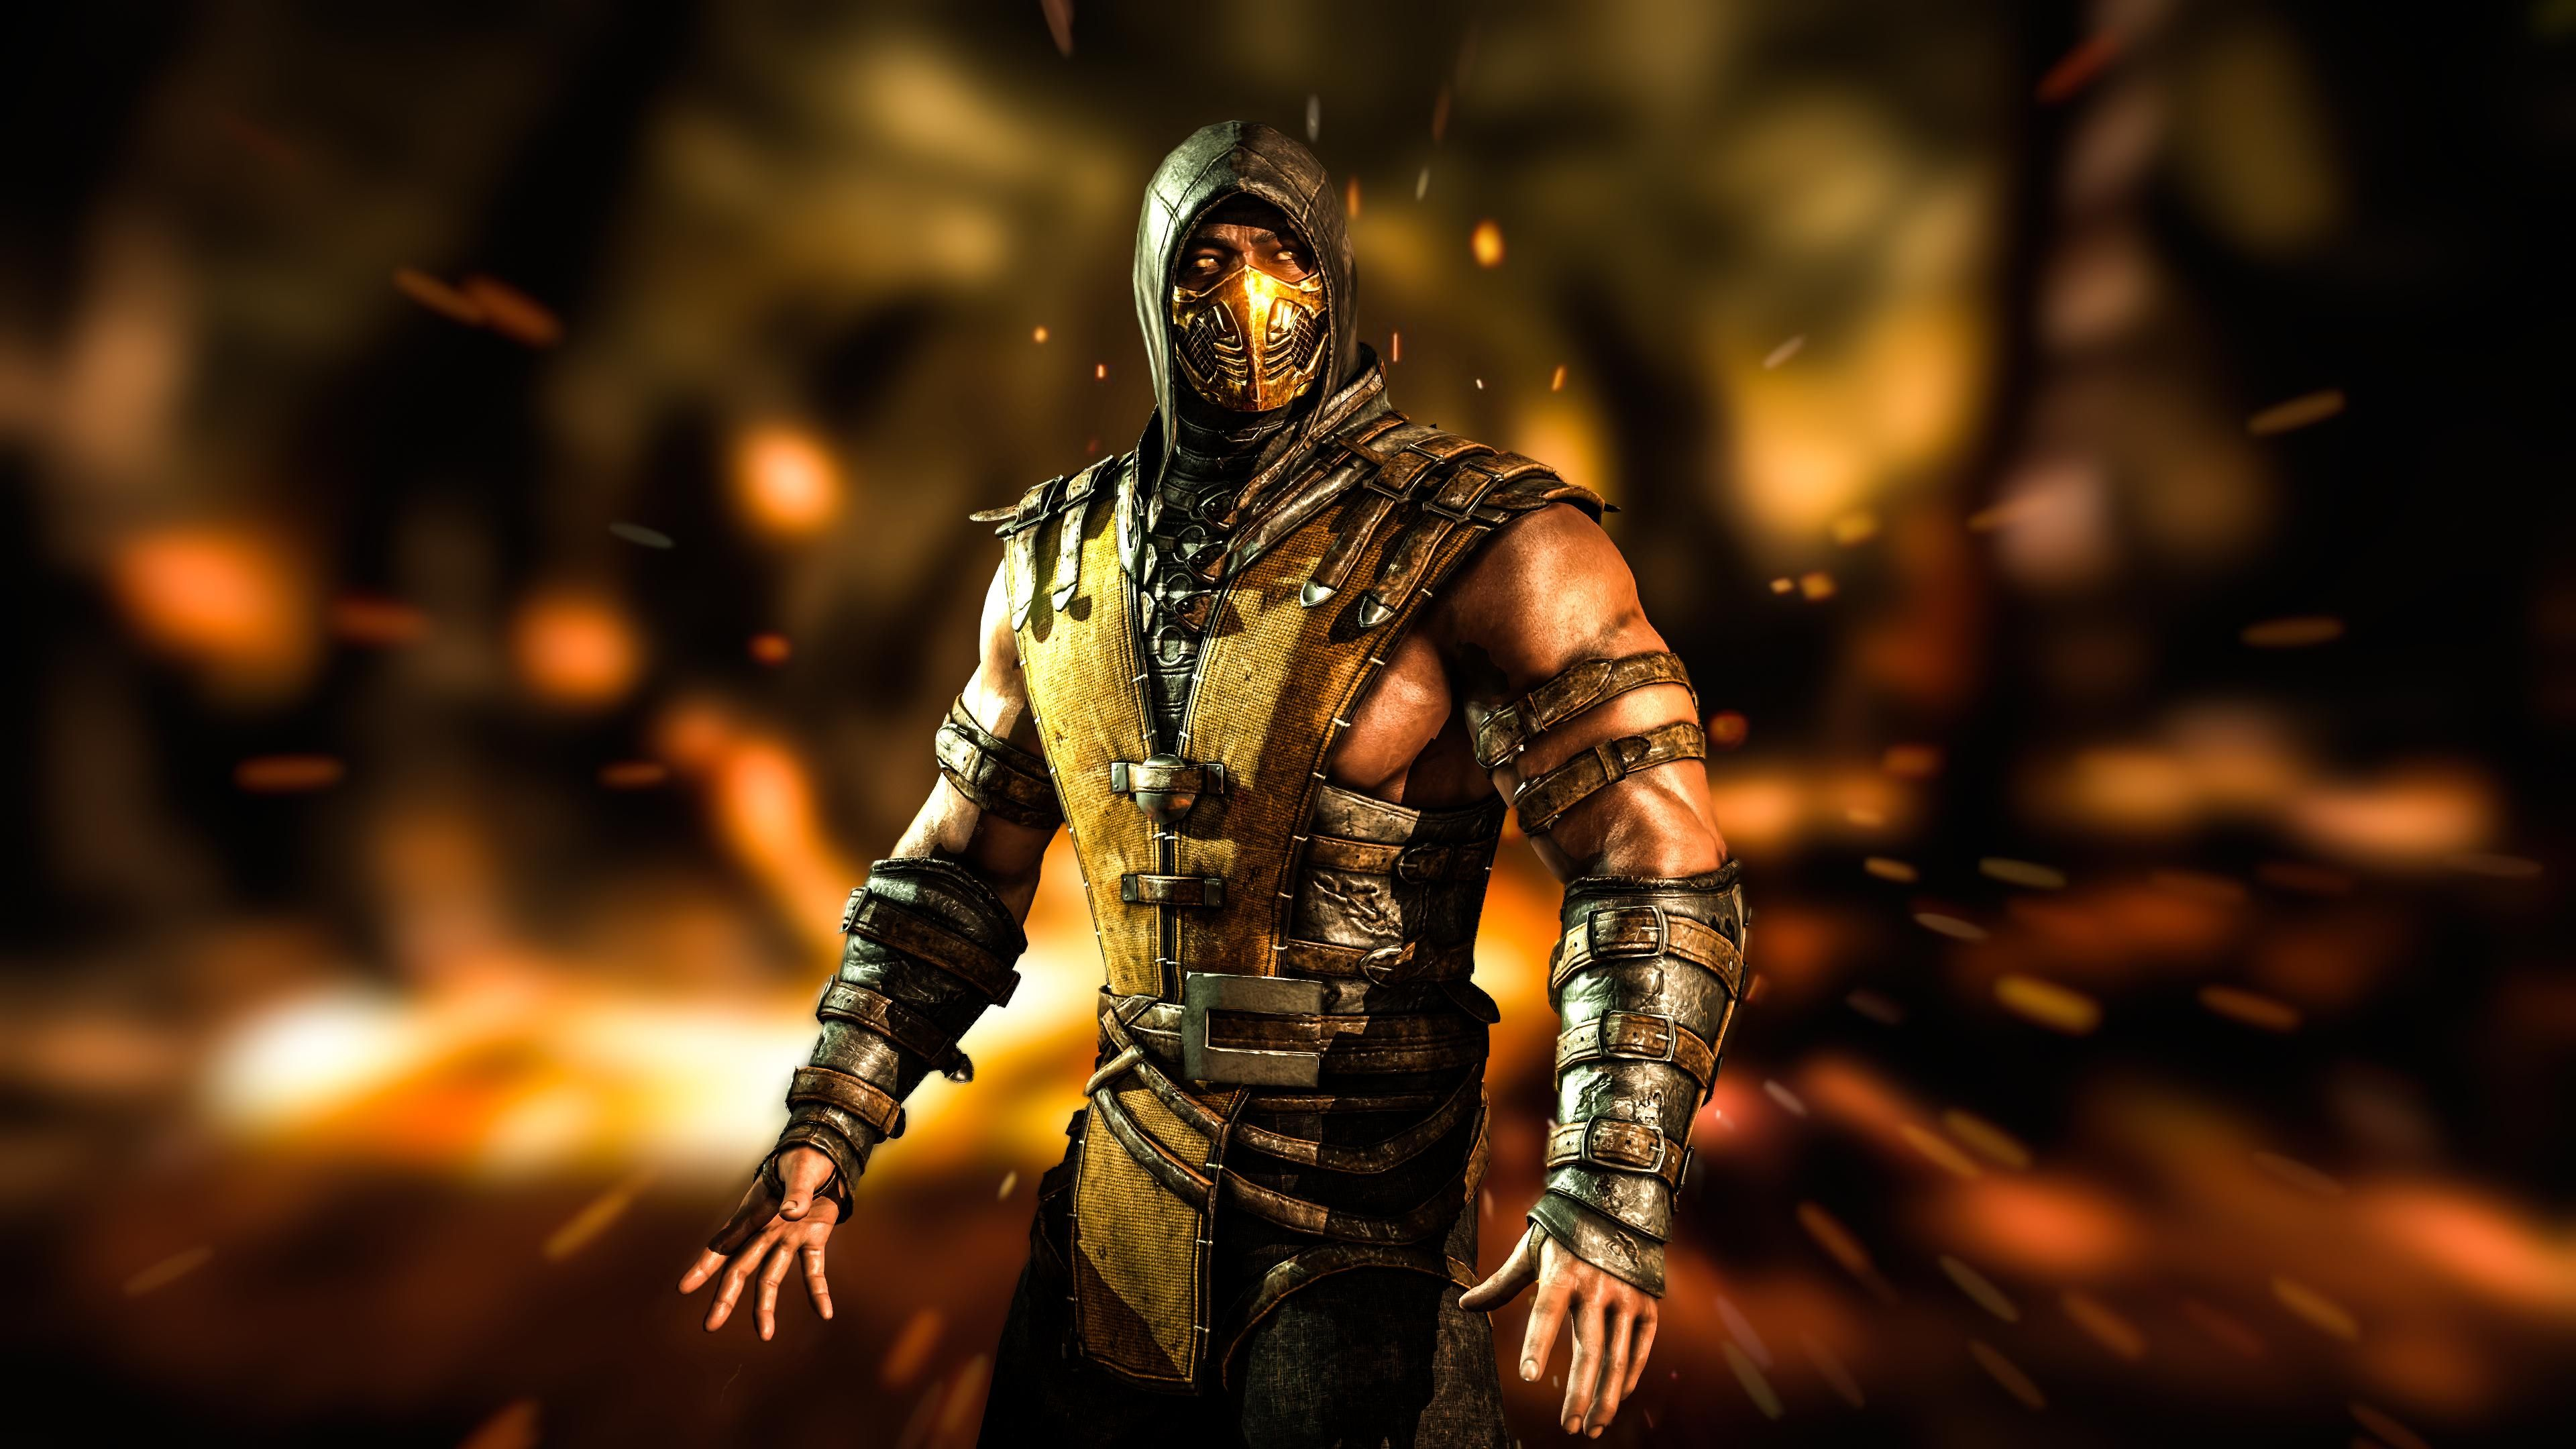 Mortal kombat x scorpion wallpaper hd desktop widescreen - Mortal kombat scorpion wallpaper ...